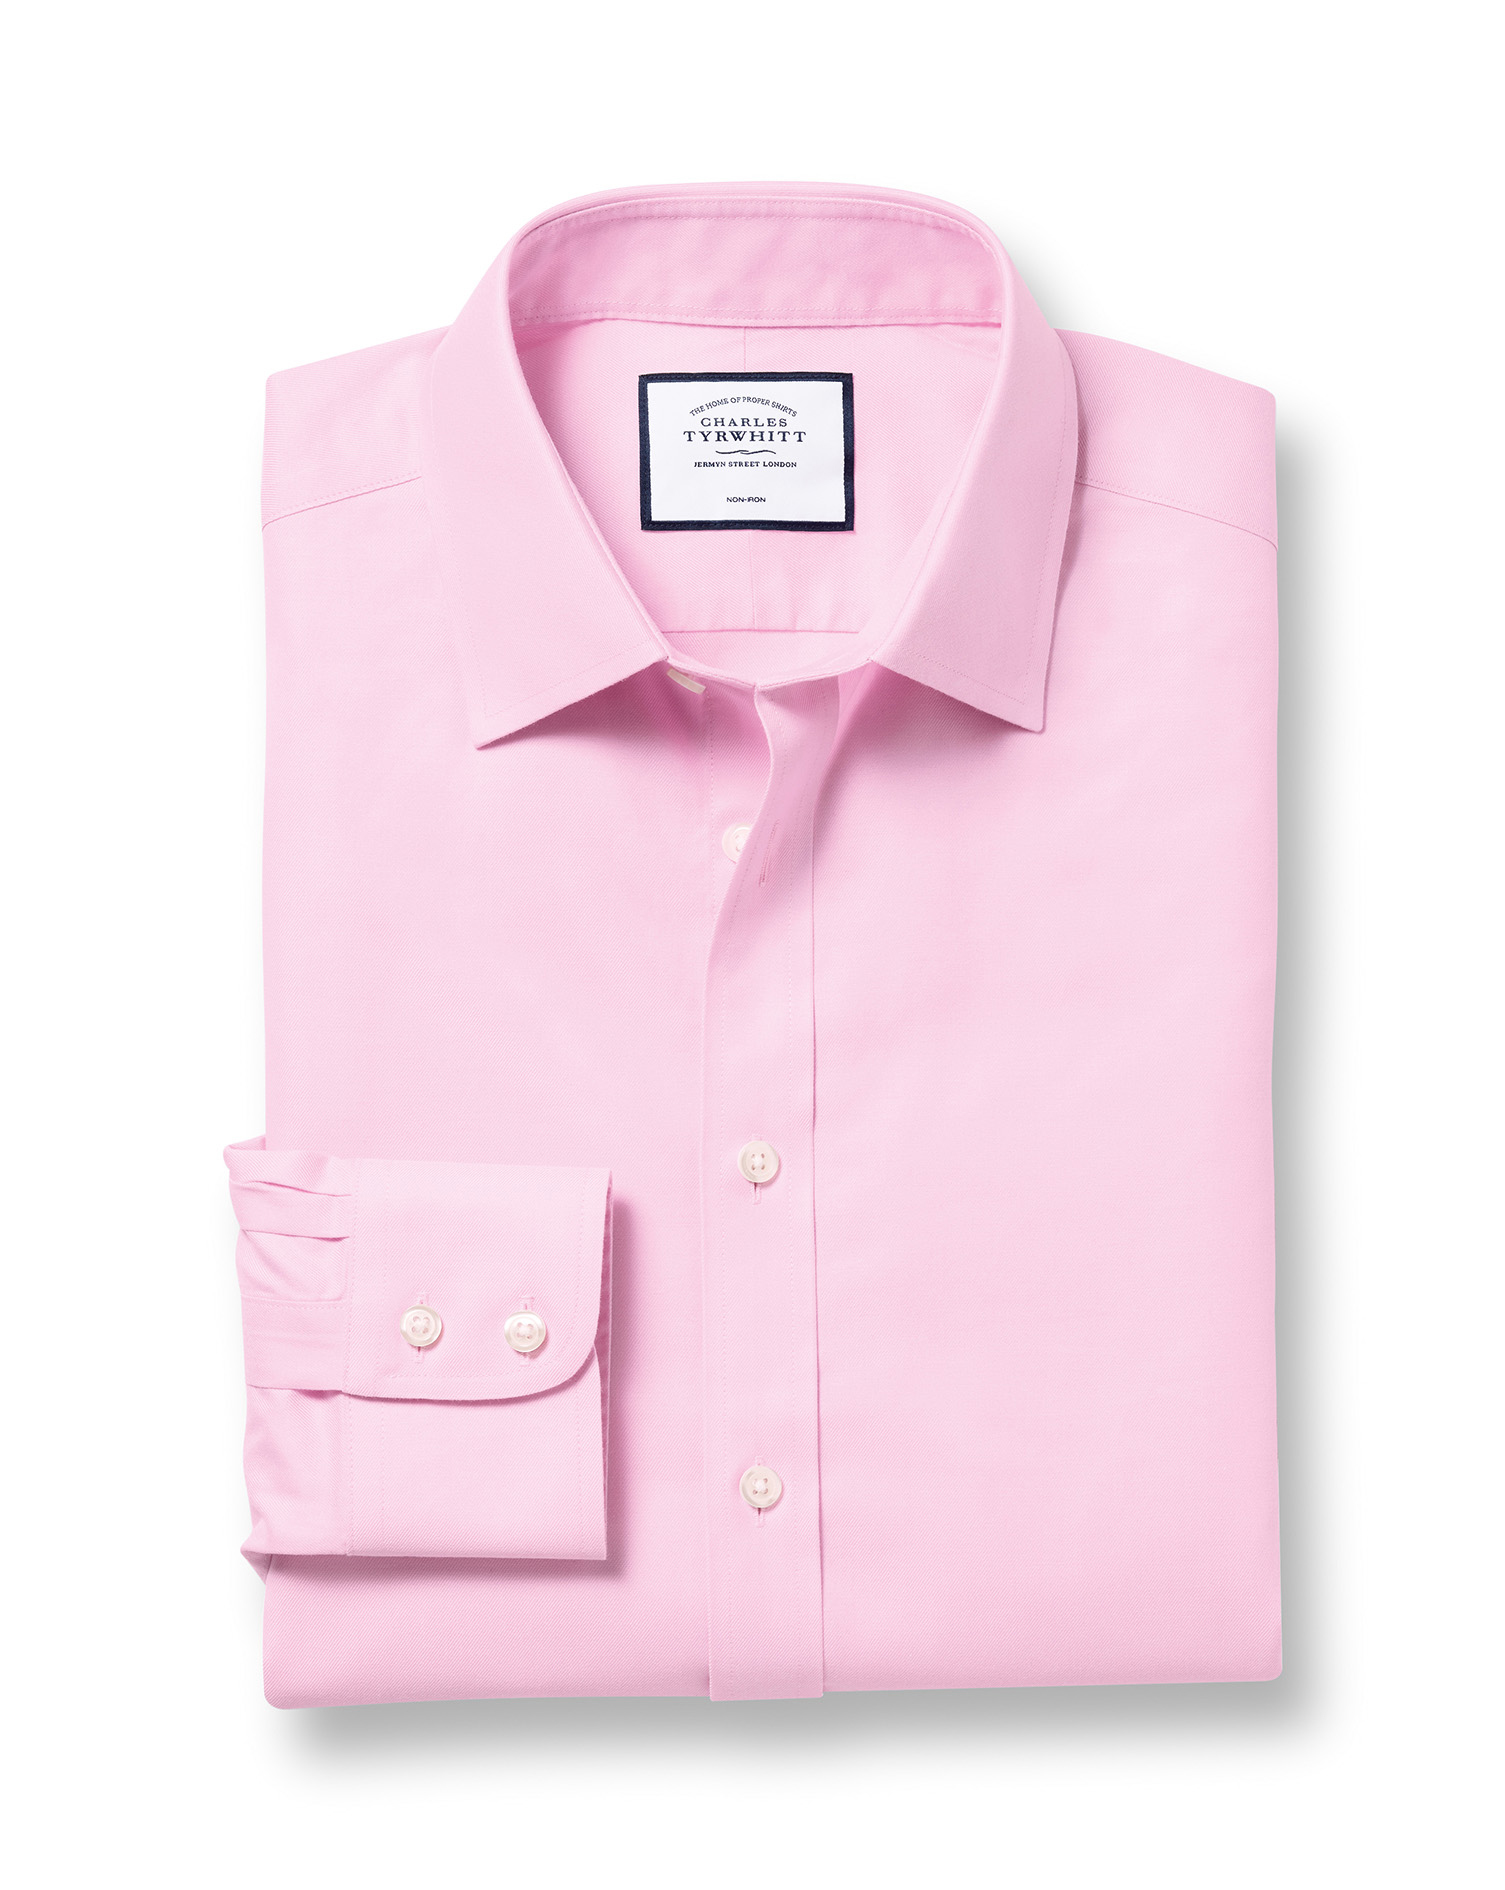 Classic Fit Pink Non-Iron Twill Cotton Formal Shirt Double Cuff Size 18/36 by Charles Tyrwhitt